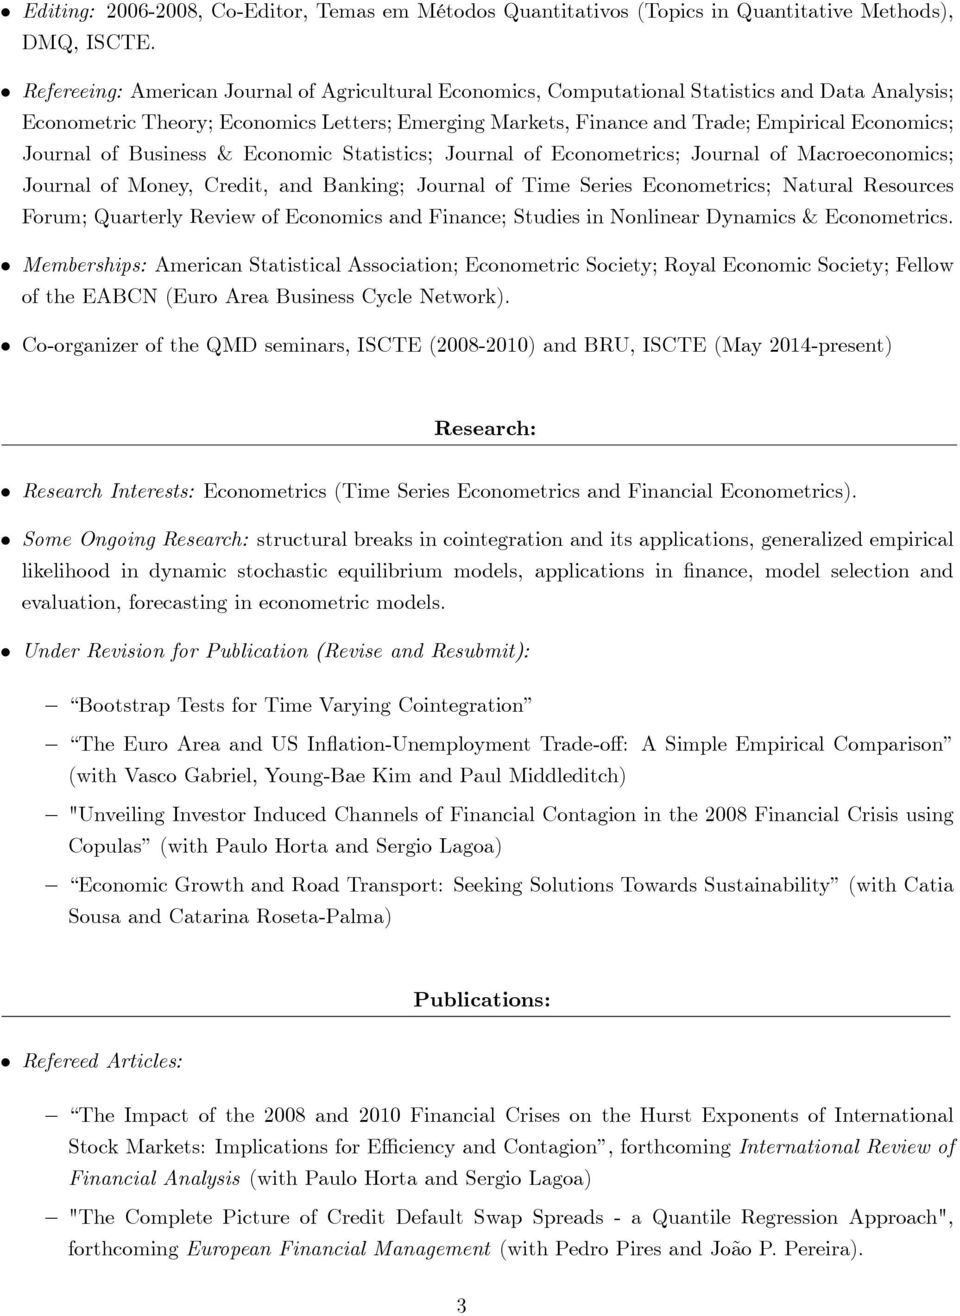 Journal of Business & Economic Statistics; Journal of Econometrics; Journal of Macroeconomics; Journal of Money, Credit, and Banking; Journal of Time Series Econometrics; Natural Resources Forum;